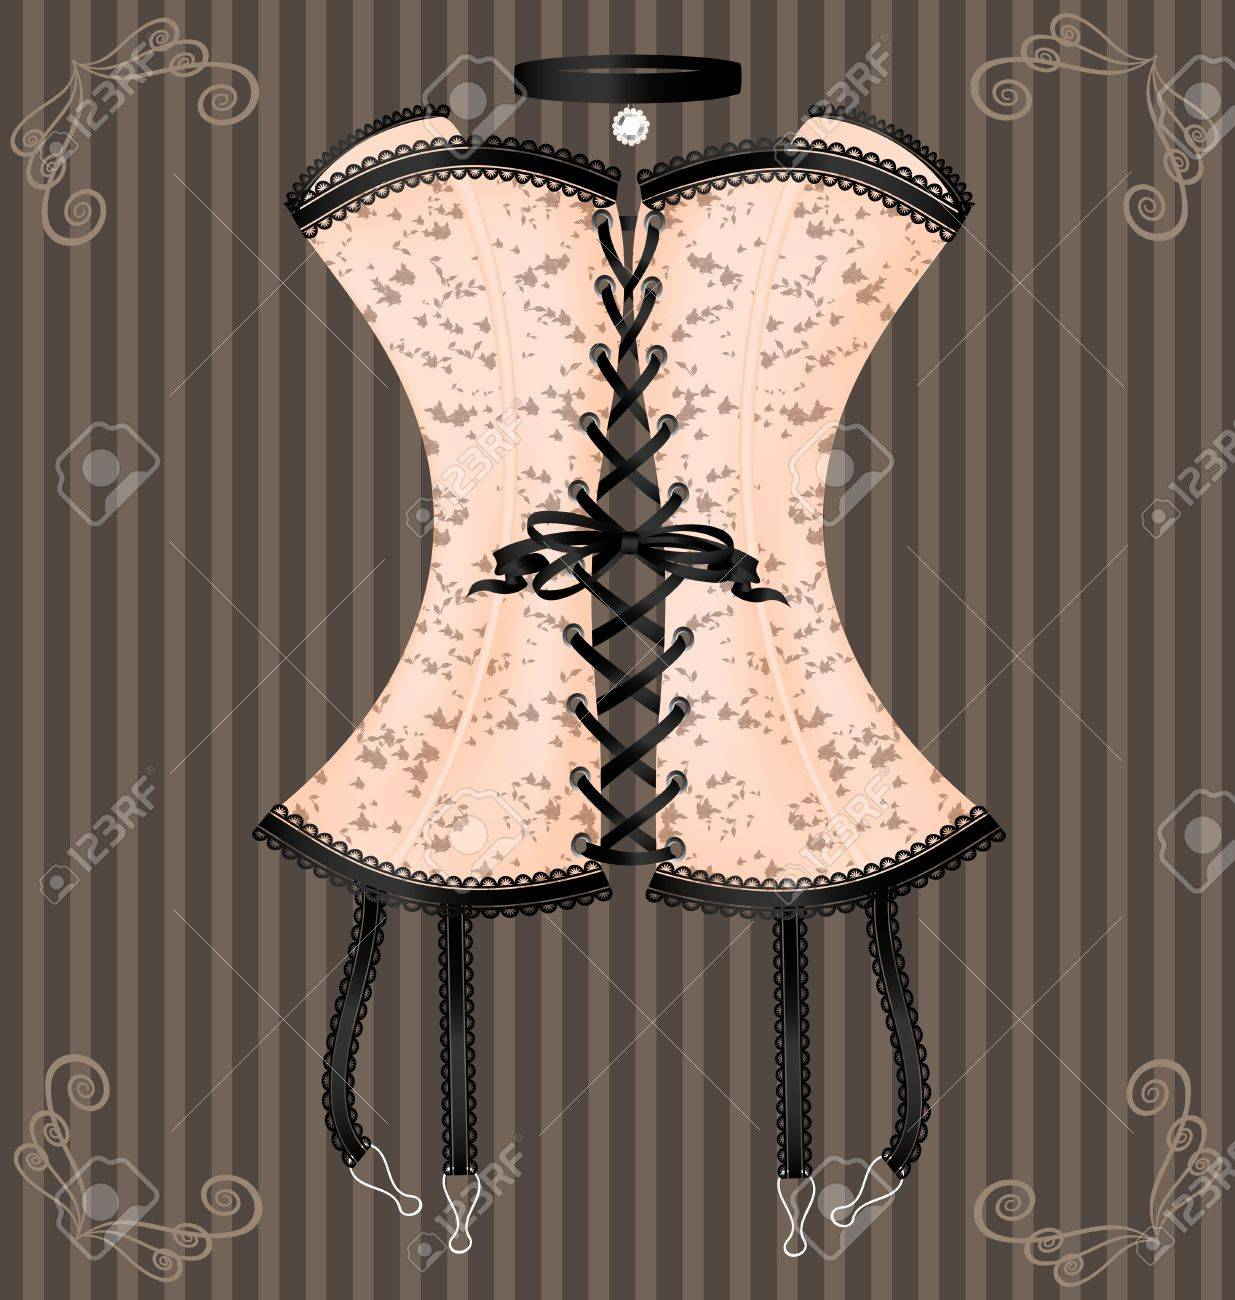 on a vintage background is a big beige corset decorated with black lace - 12821671